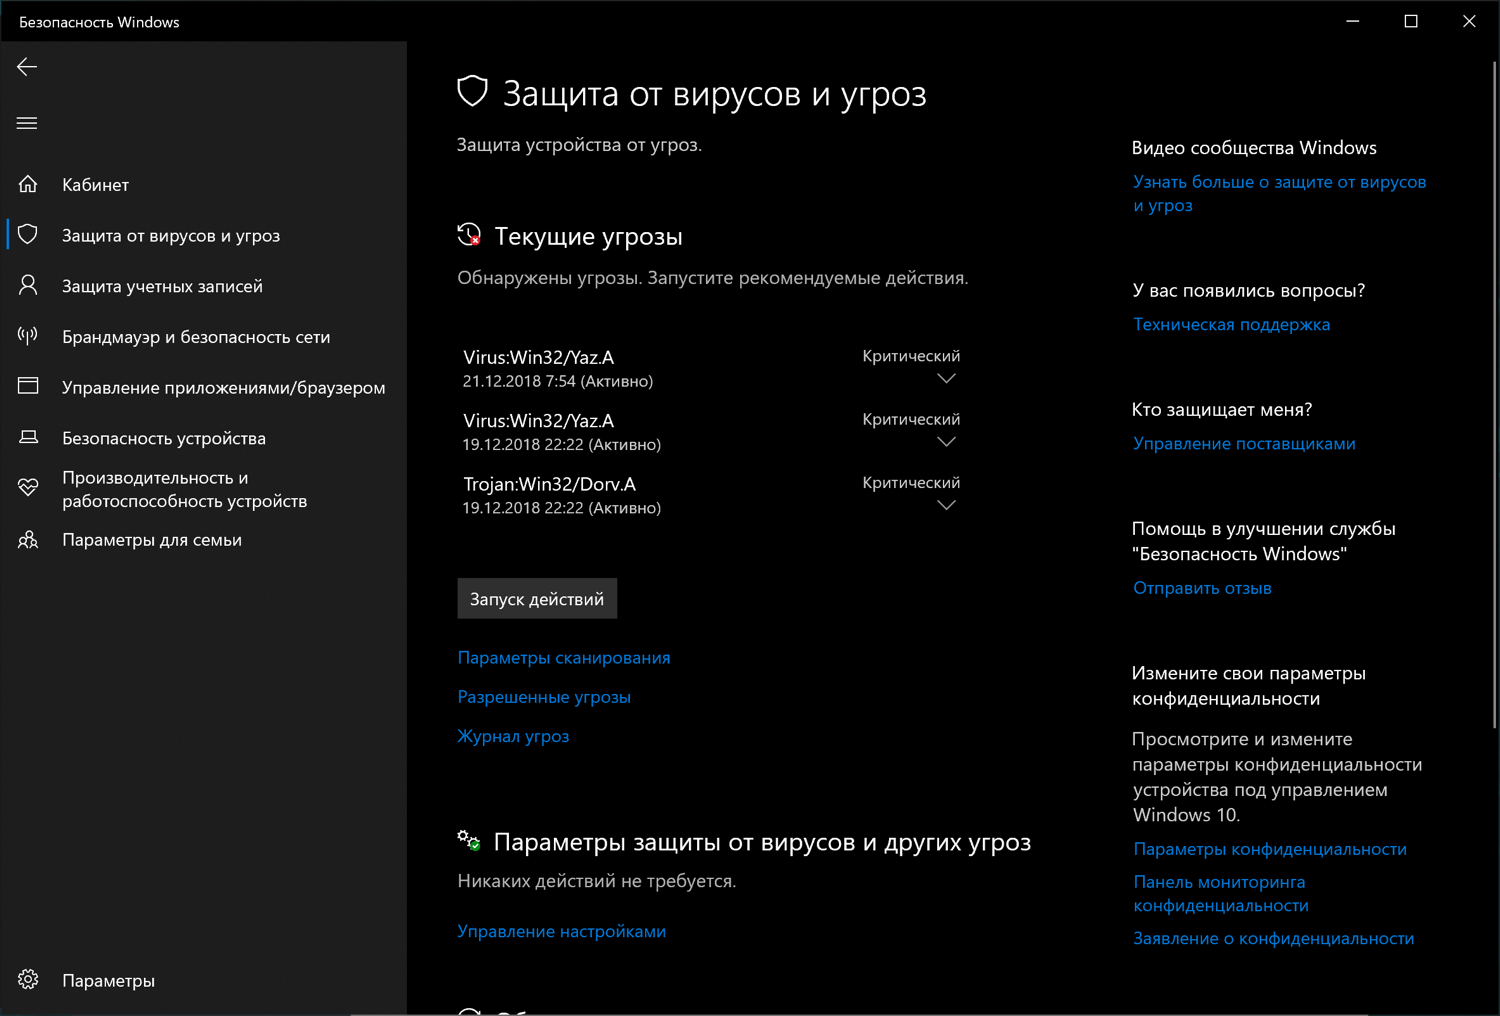 Обзор Windows 10 April 2019 Update (версия 1903) – Журнал угроз